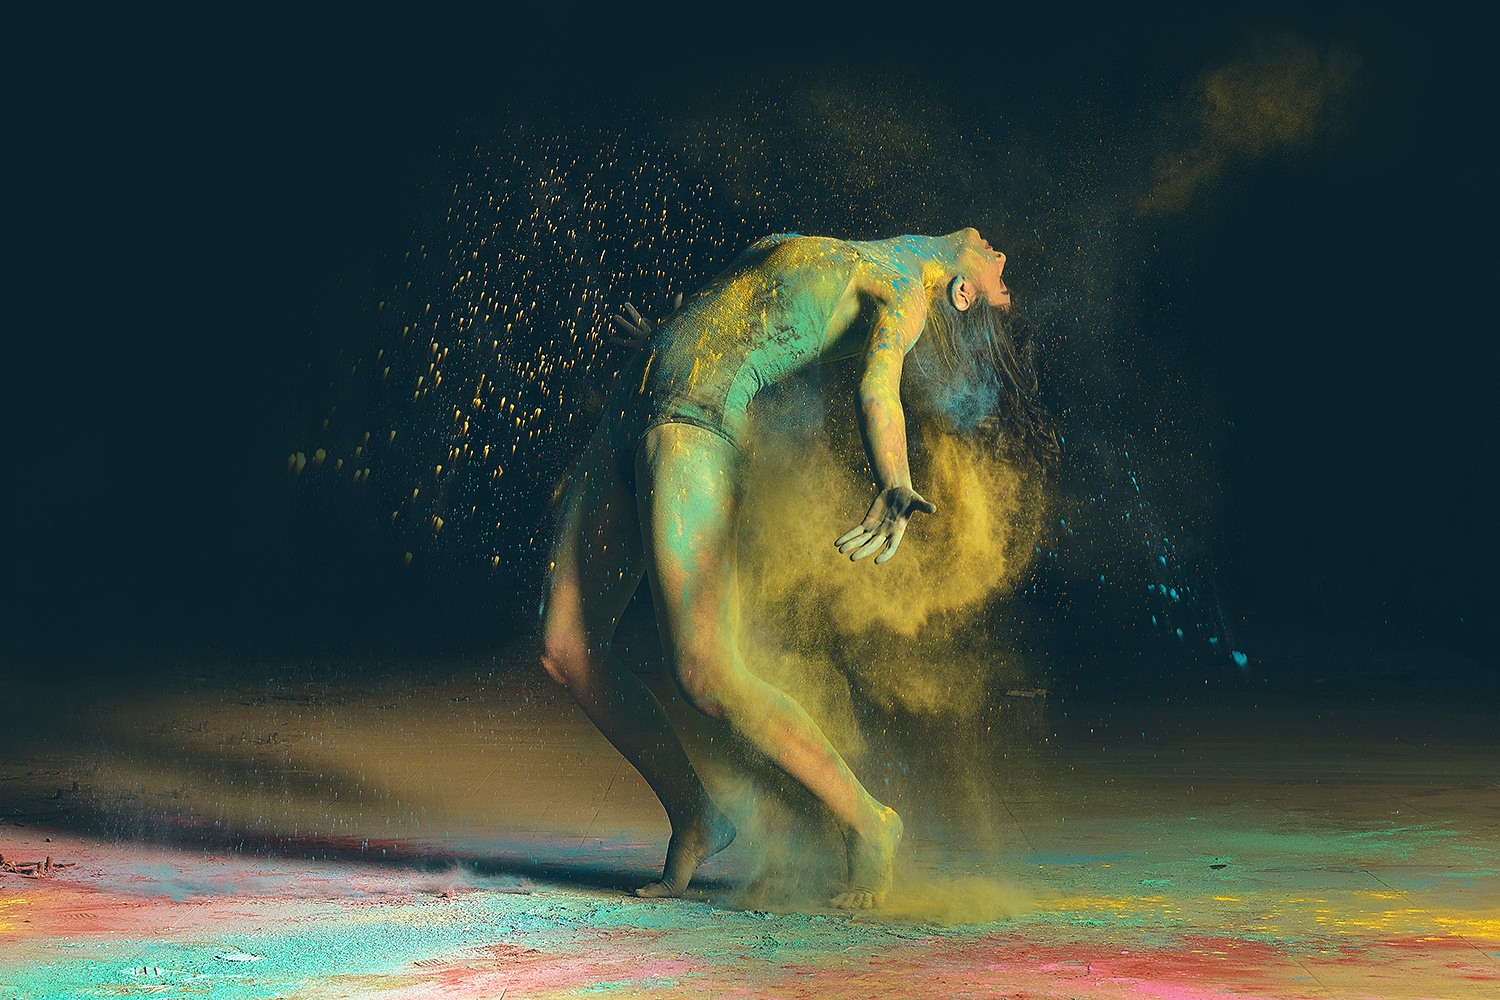 Inside Power - The Dancer Project by Adolfo Usier